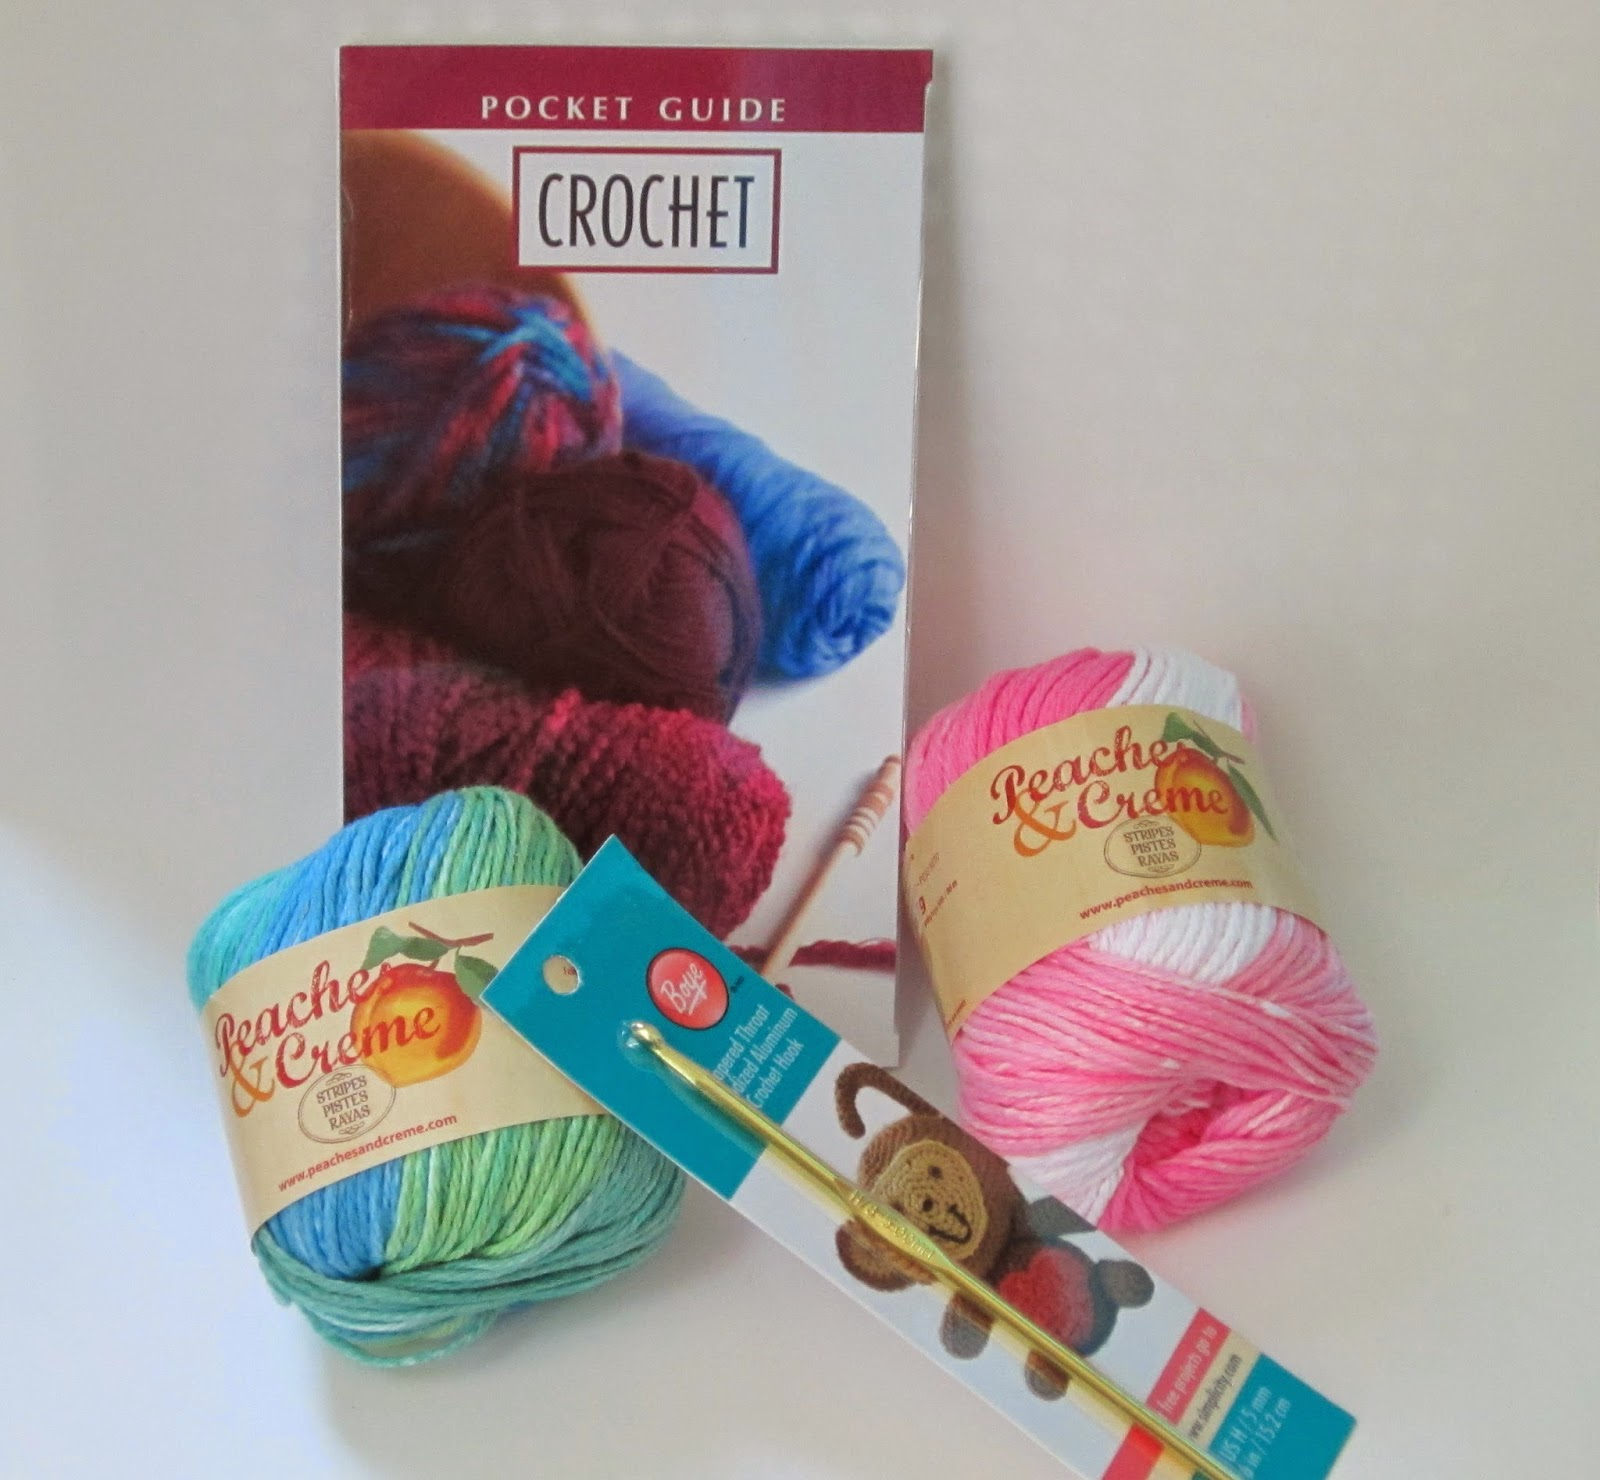 https://www.etsy.com/listing/197447073/learn-to-crochet-kit-comes-with-crochet?ref=shop_home_active_1